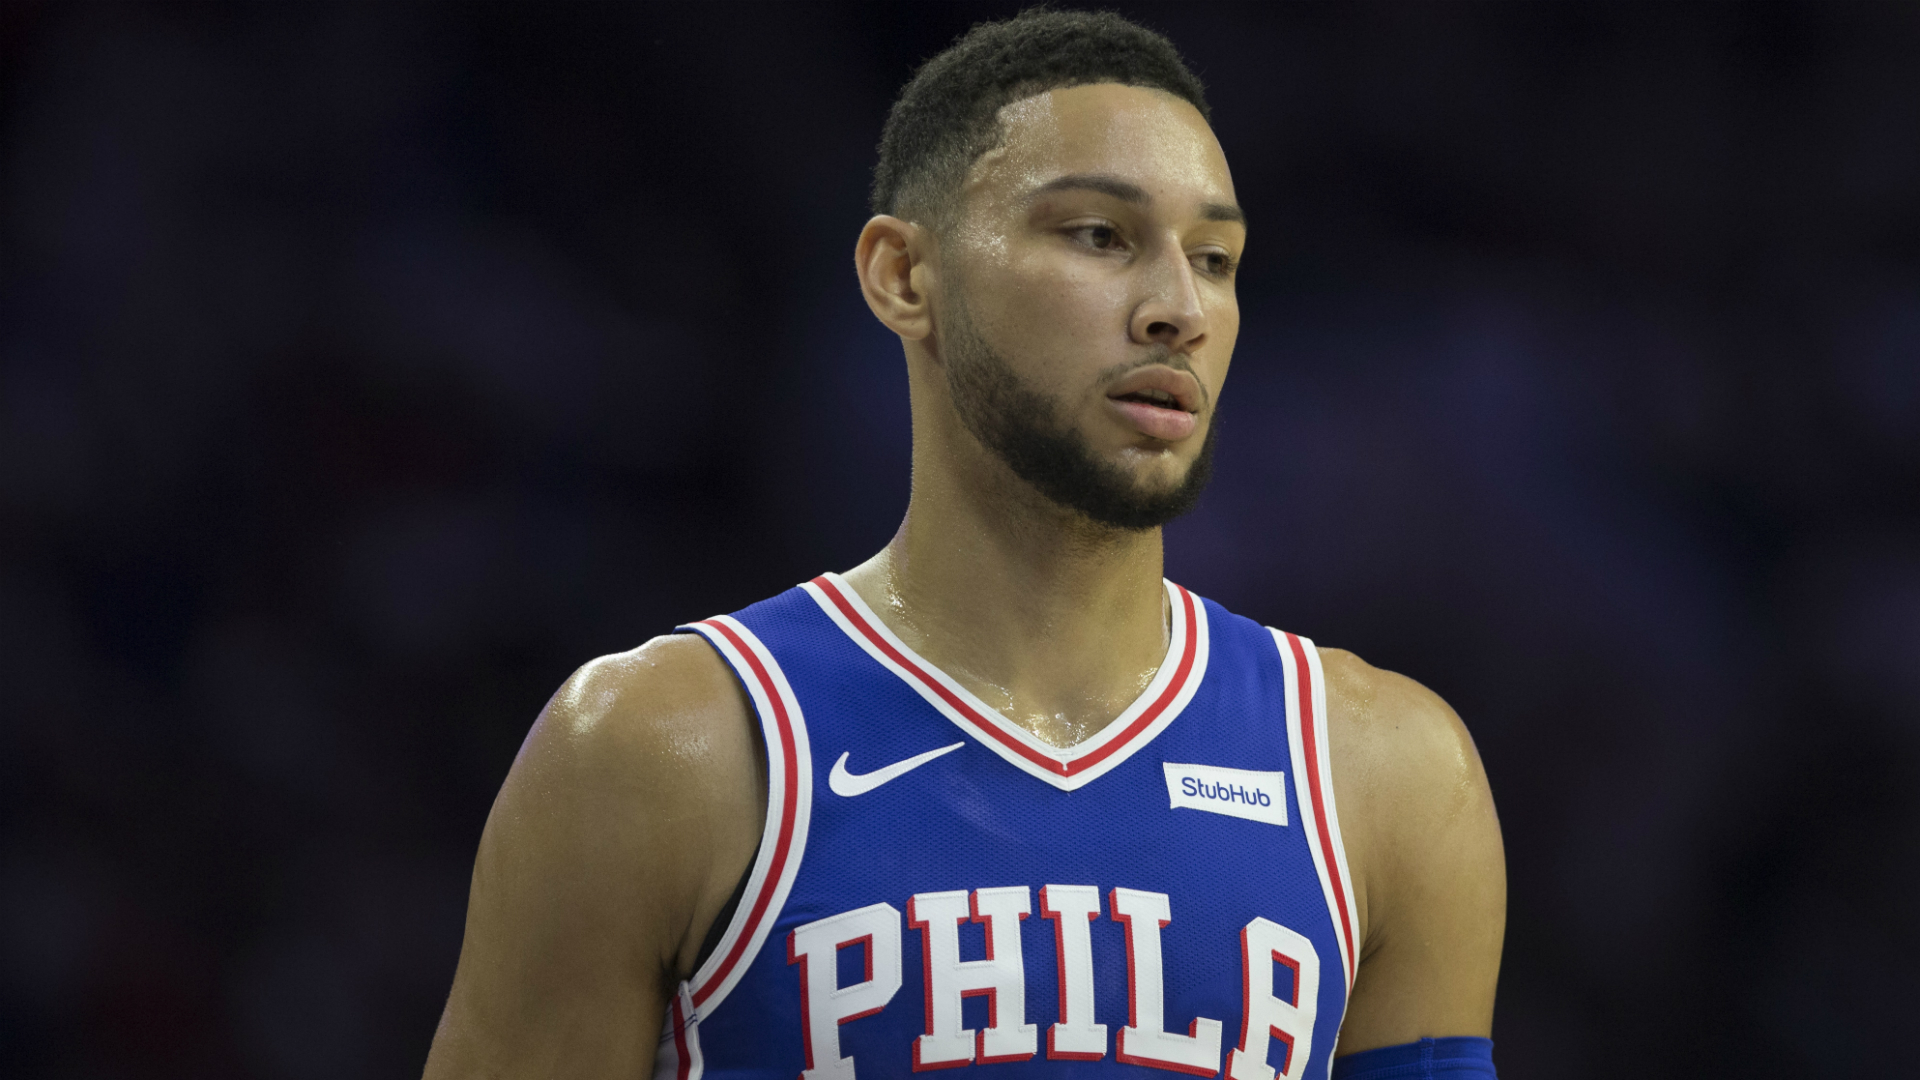 76ers guard Simmons confident his shooting is improving